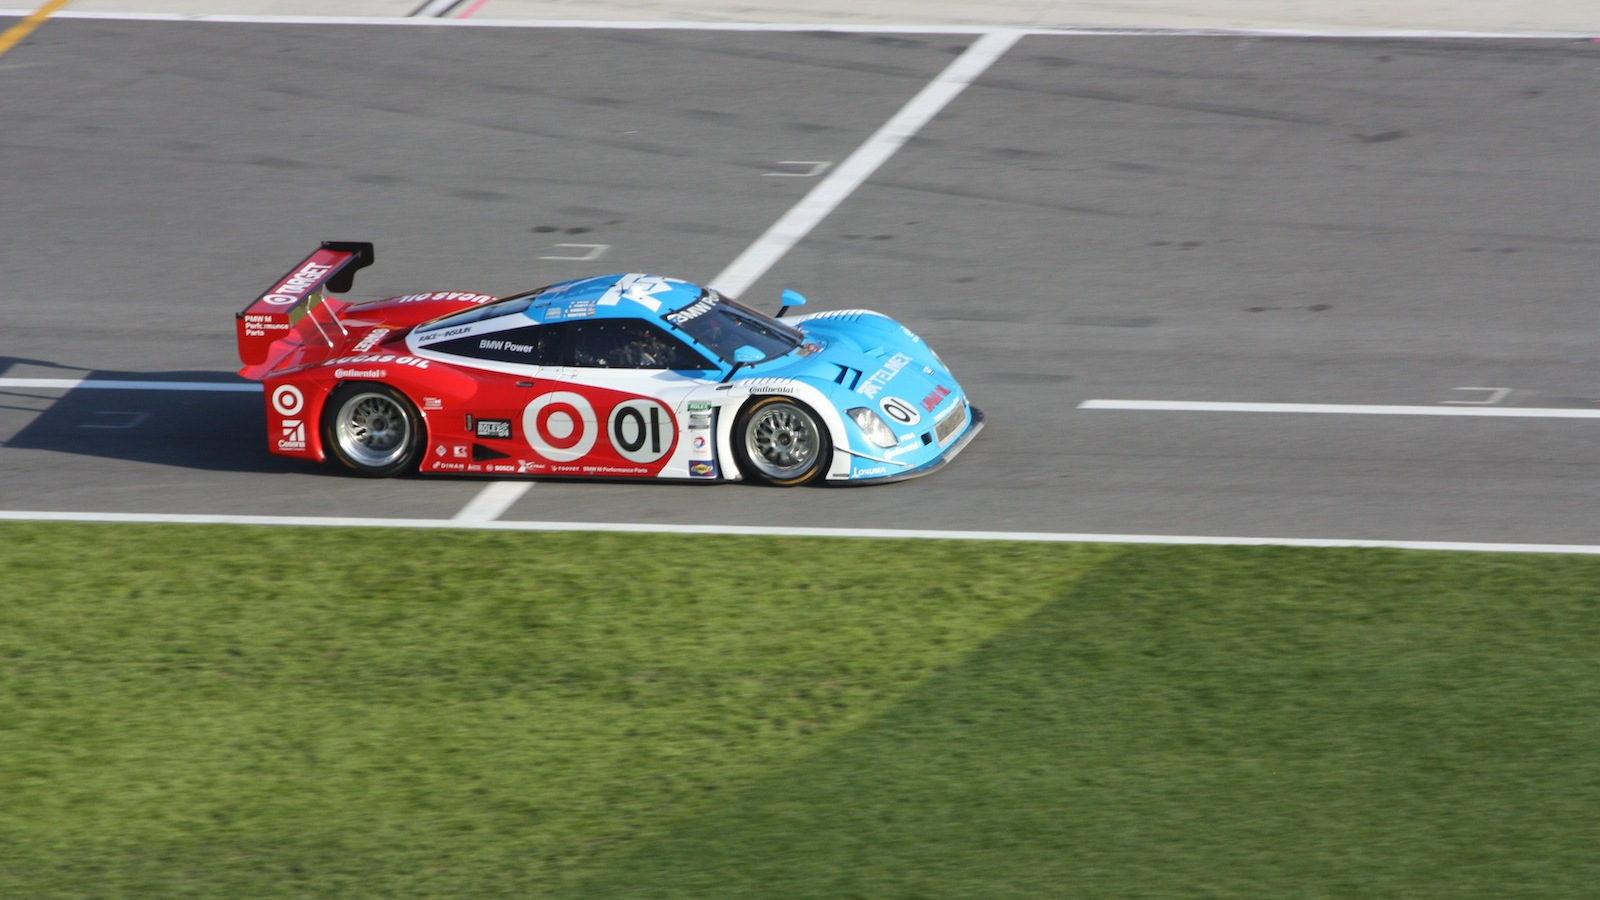 The 01 BMW Riley on Chip Ganassi Racing makes an early pit stop